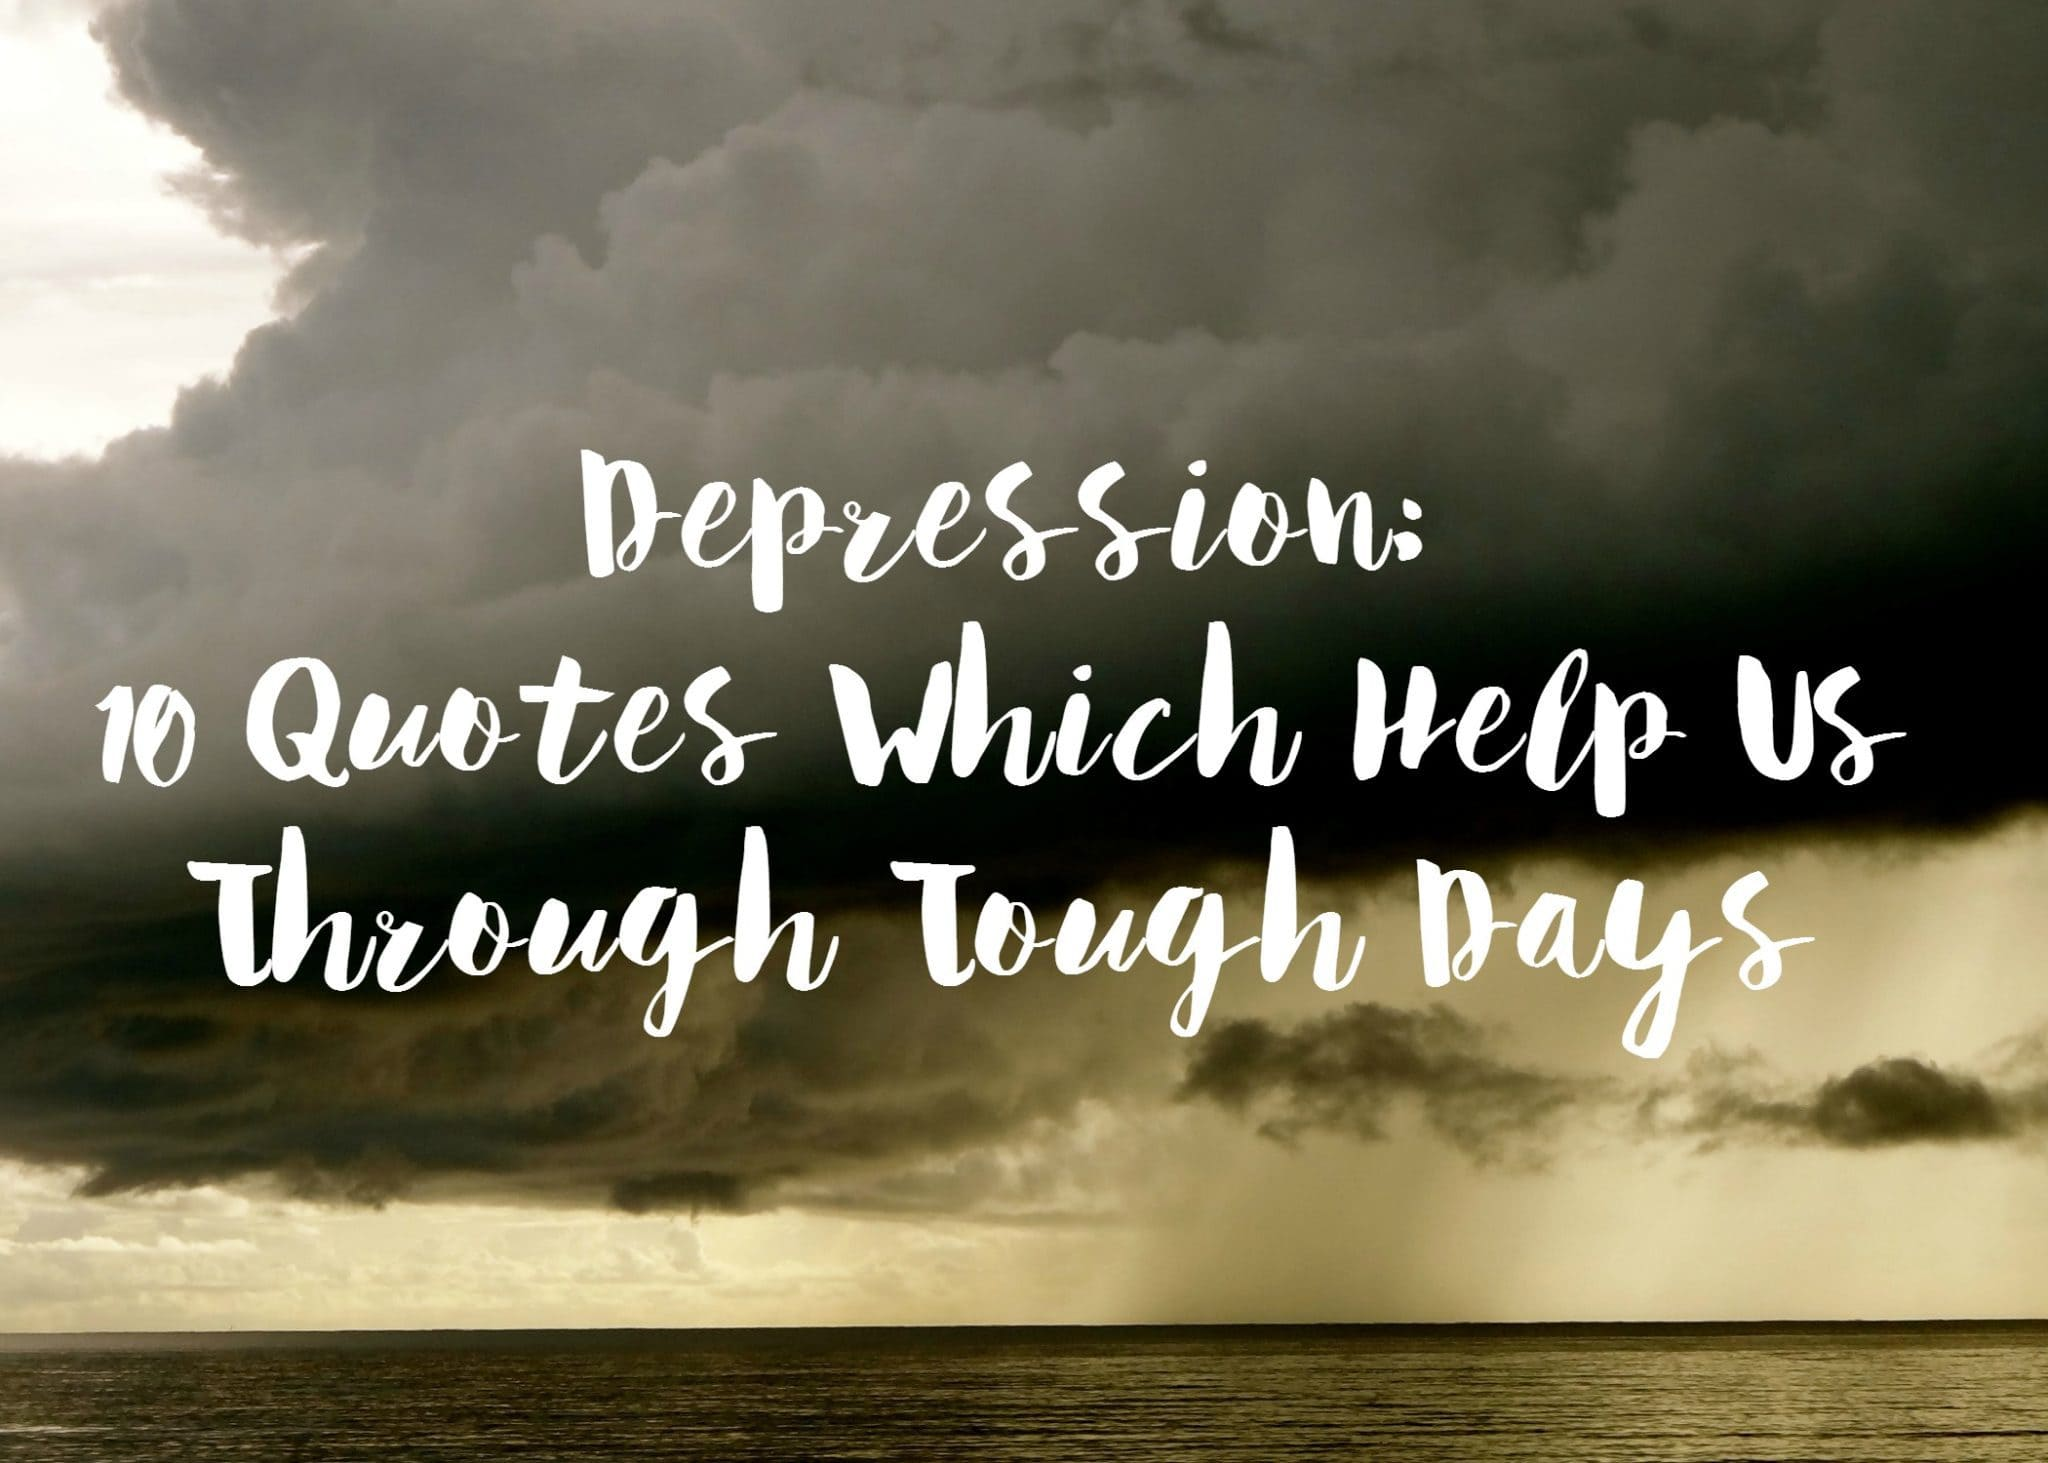 Help Quotes Depression 10 Quotes Which Help Us Through Tough Days